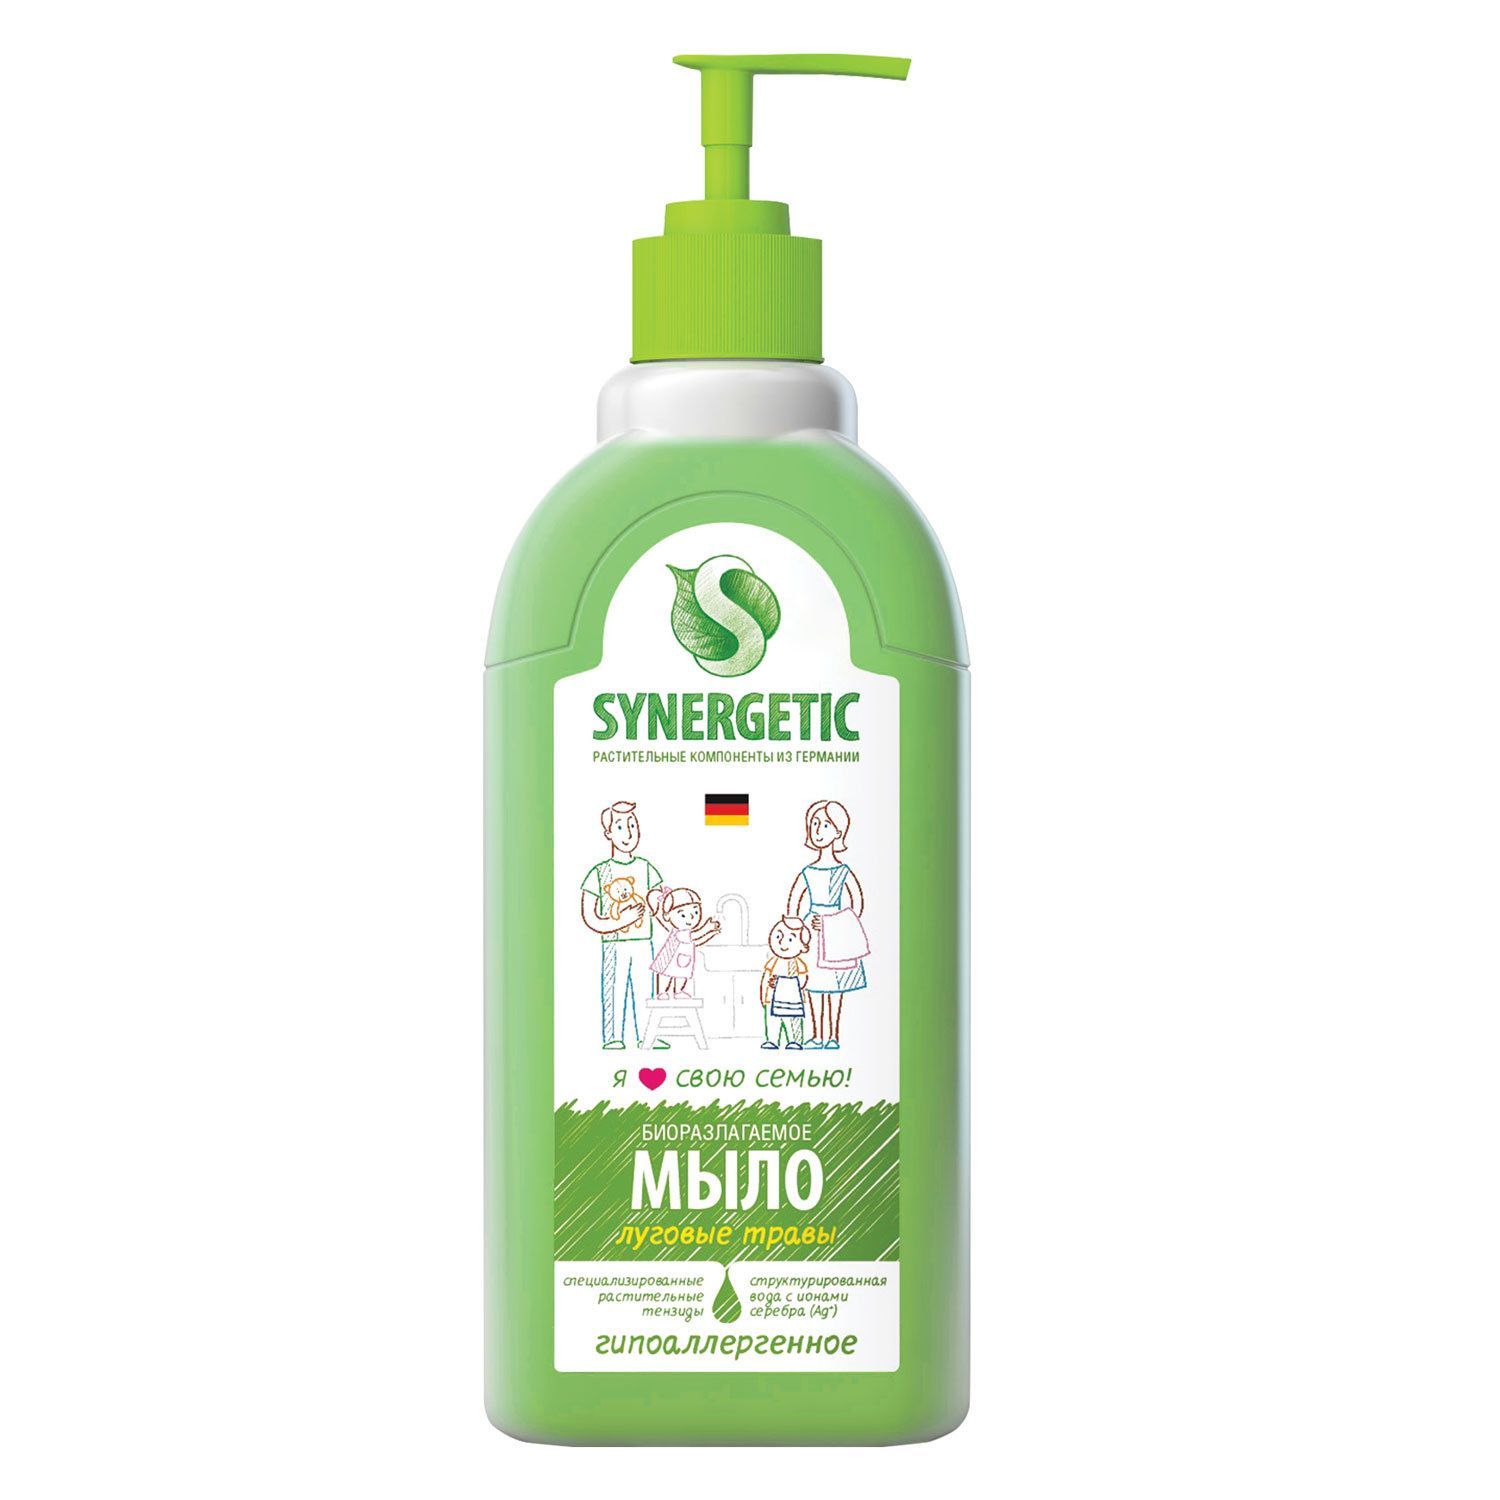 "Liquid soap 500 ml SYNERGETIC ""Meadow grass"", hypoallergenic, biodegradable, dispenser"